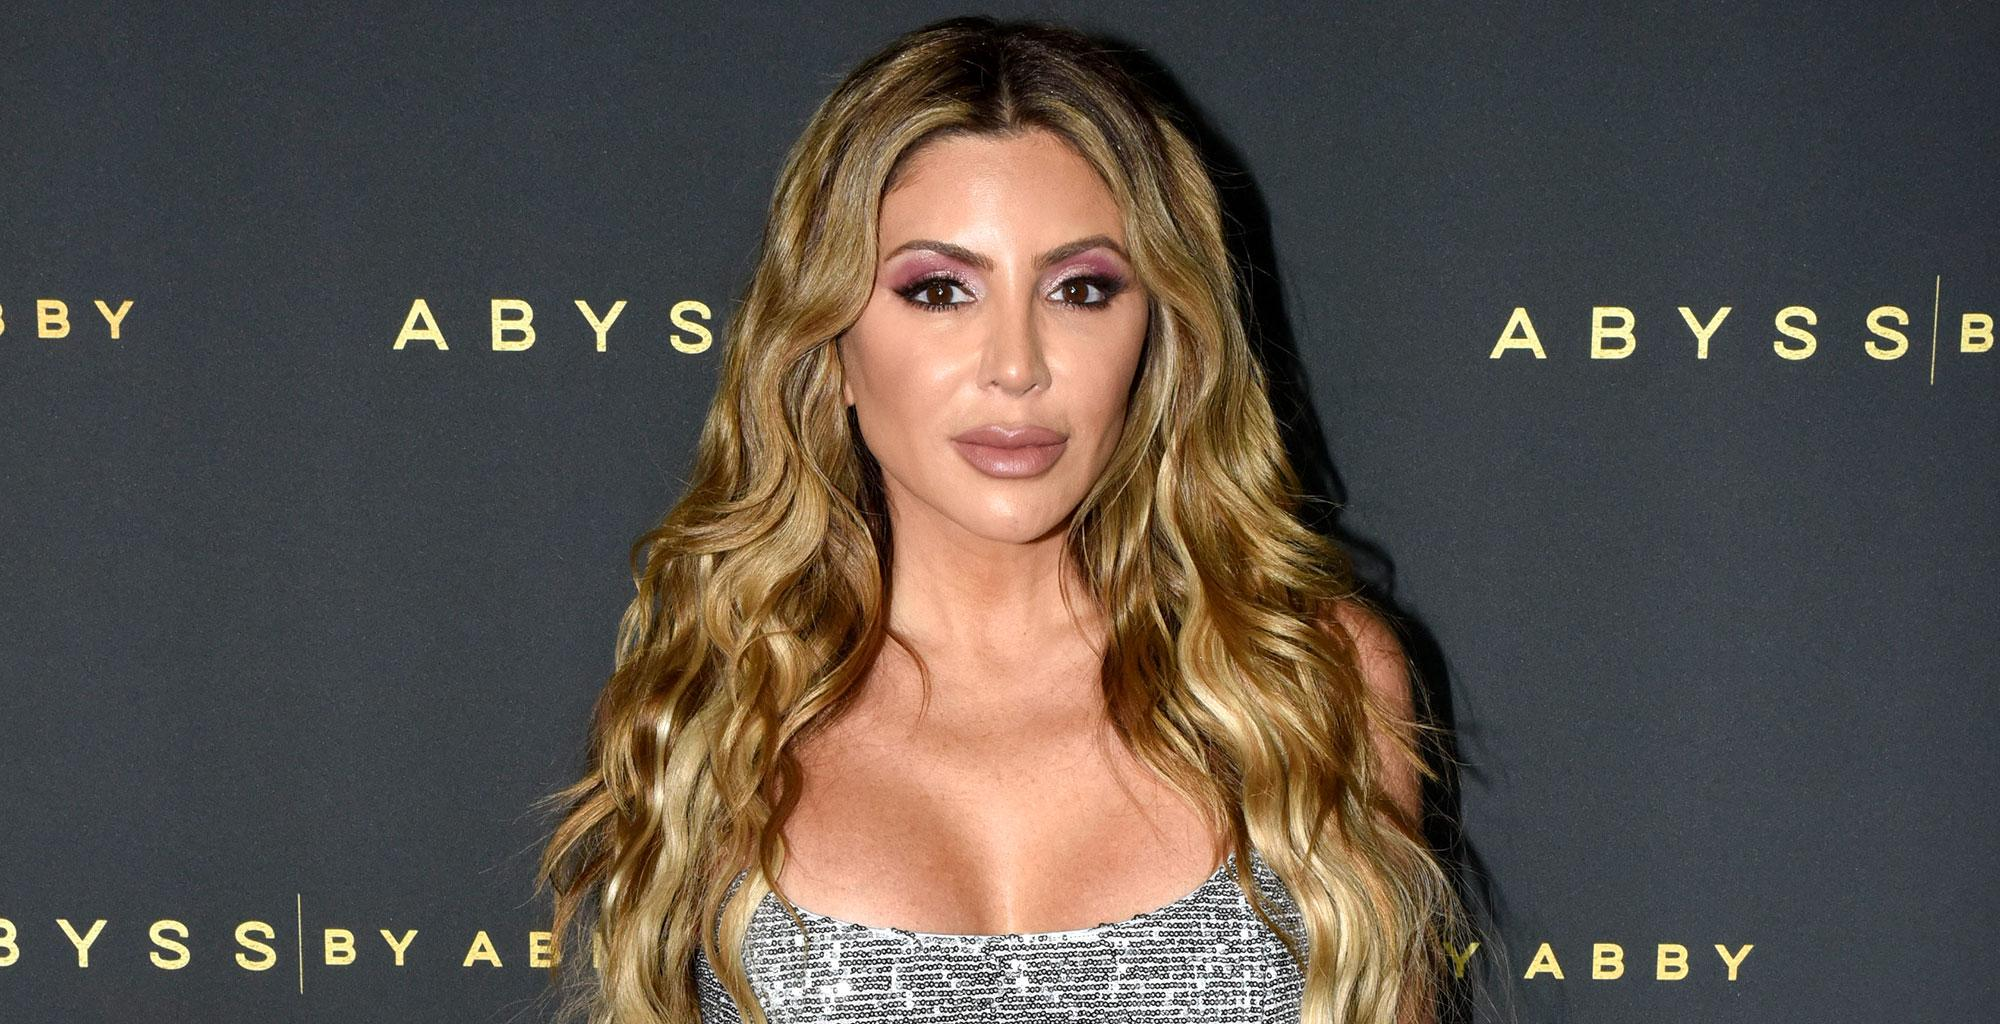 KUWTK: Larsa Pippen - Here's How She Feels About The Rumored Kimye Divorce After Claiming Kanye West Caused Her Fallout With Kim Kardashian!